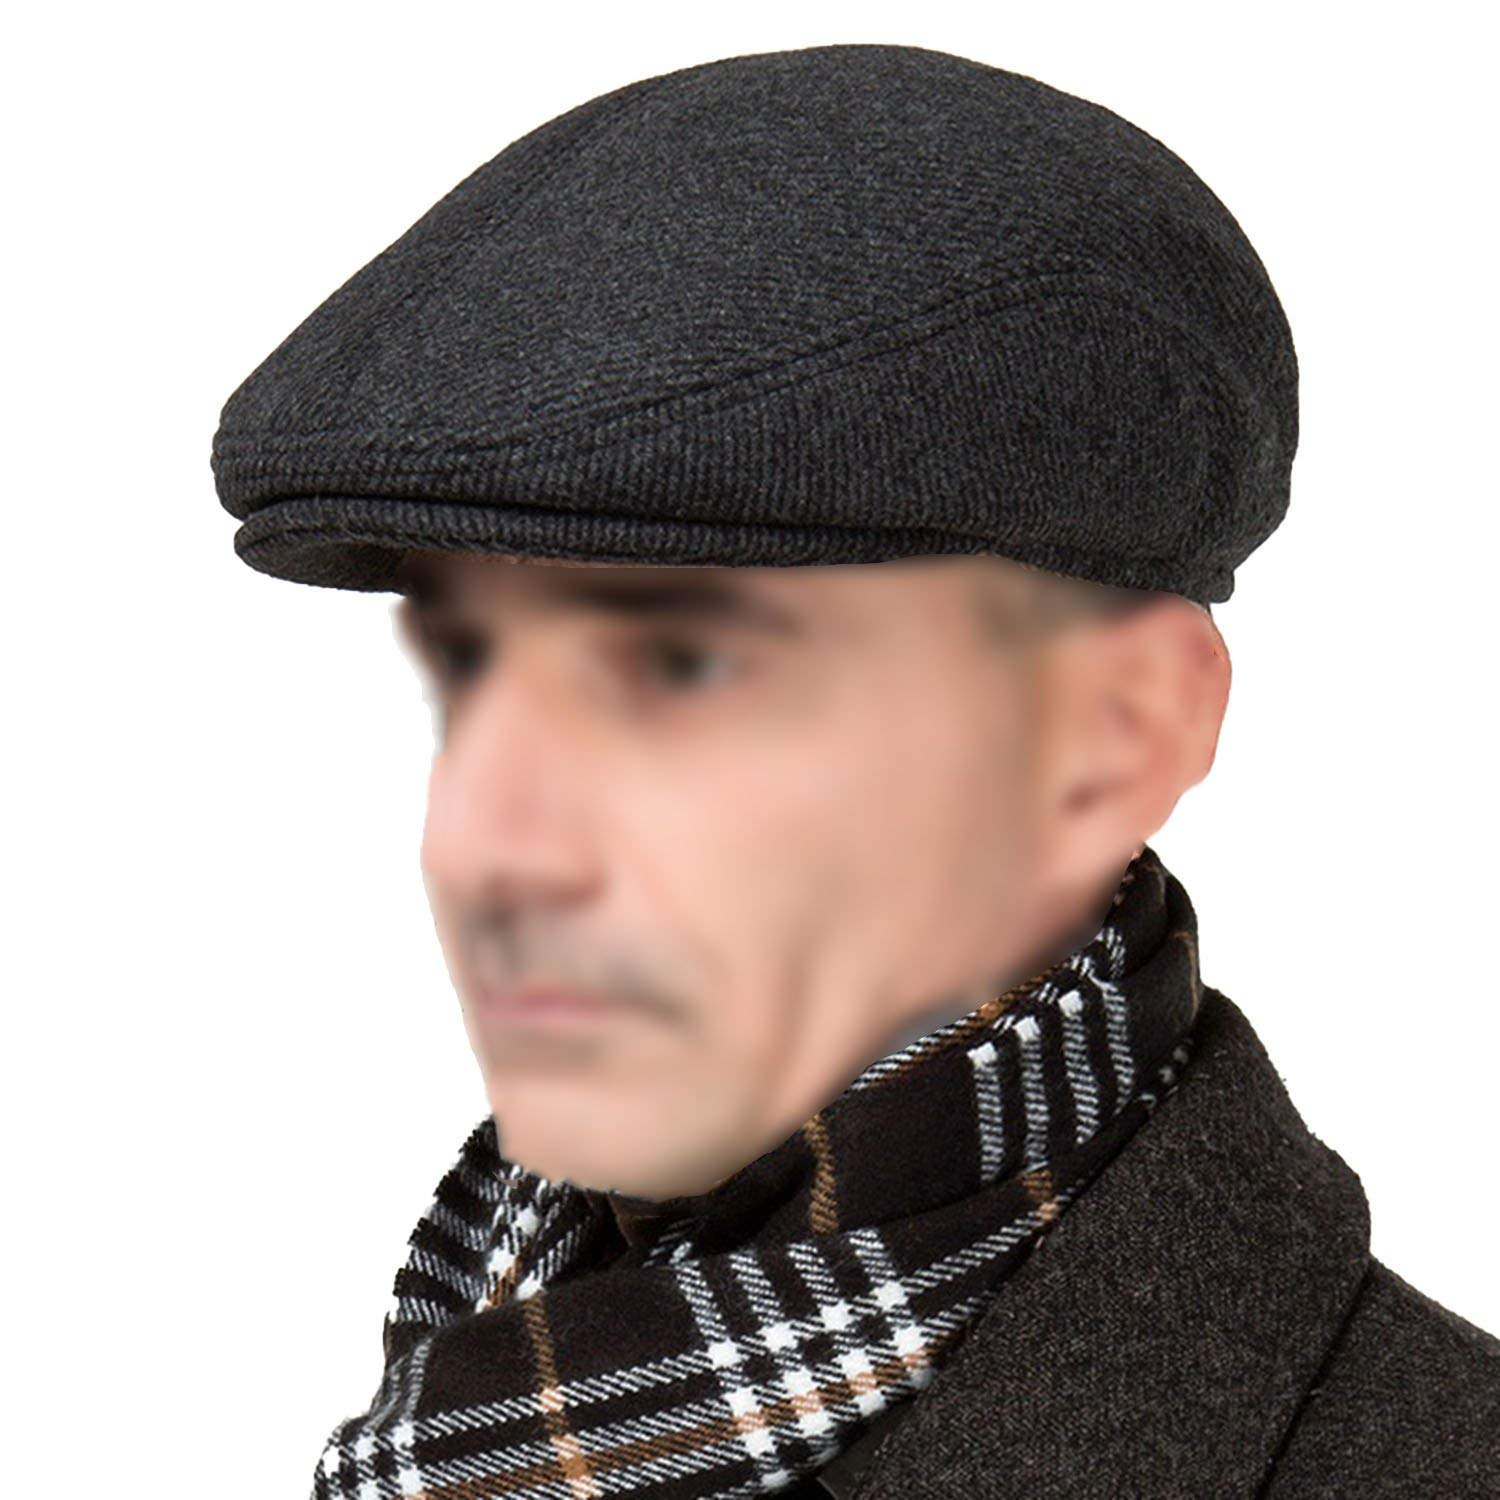 Winter Beret with Earflap for Men Vintage Flat Cap Dad Plaid Peaked Hats